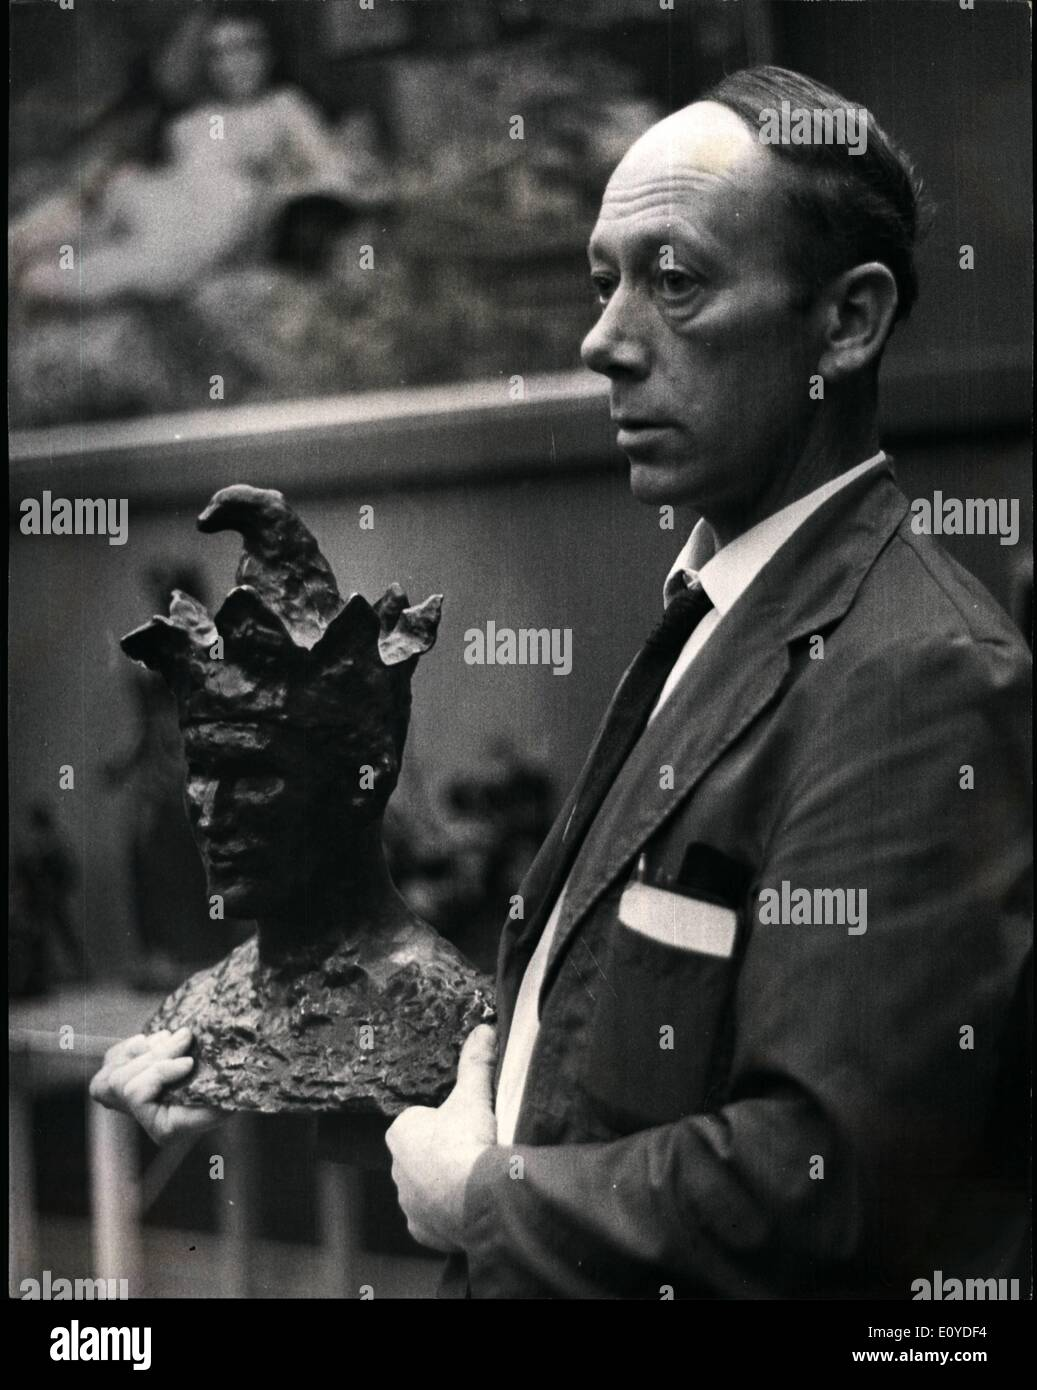 Dec. 12, 1969 - Sotheby's stage first ever complete sale of sculpture. The most important sale of modern sculpture held in Britain and the first complete sale of this kind ever held by Sotheby's is taking place this evening. One of the most important pieces of sculpture is ''Tete de ''Fou' by Pablo Picasso, a signed bronze 16 inches high, The model, for the lower part of the face was Max Jacob. The branze was executed in 1904 and was edited by Ambroise Vollard. Photo shows The Picasso Sculpture ''Tete de Vfou'' pictured at Sotheby's today where it was sold for $ 23,000. - Stock Image